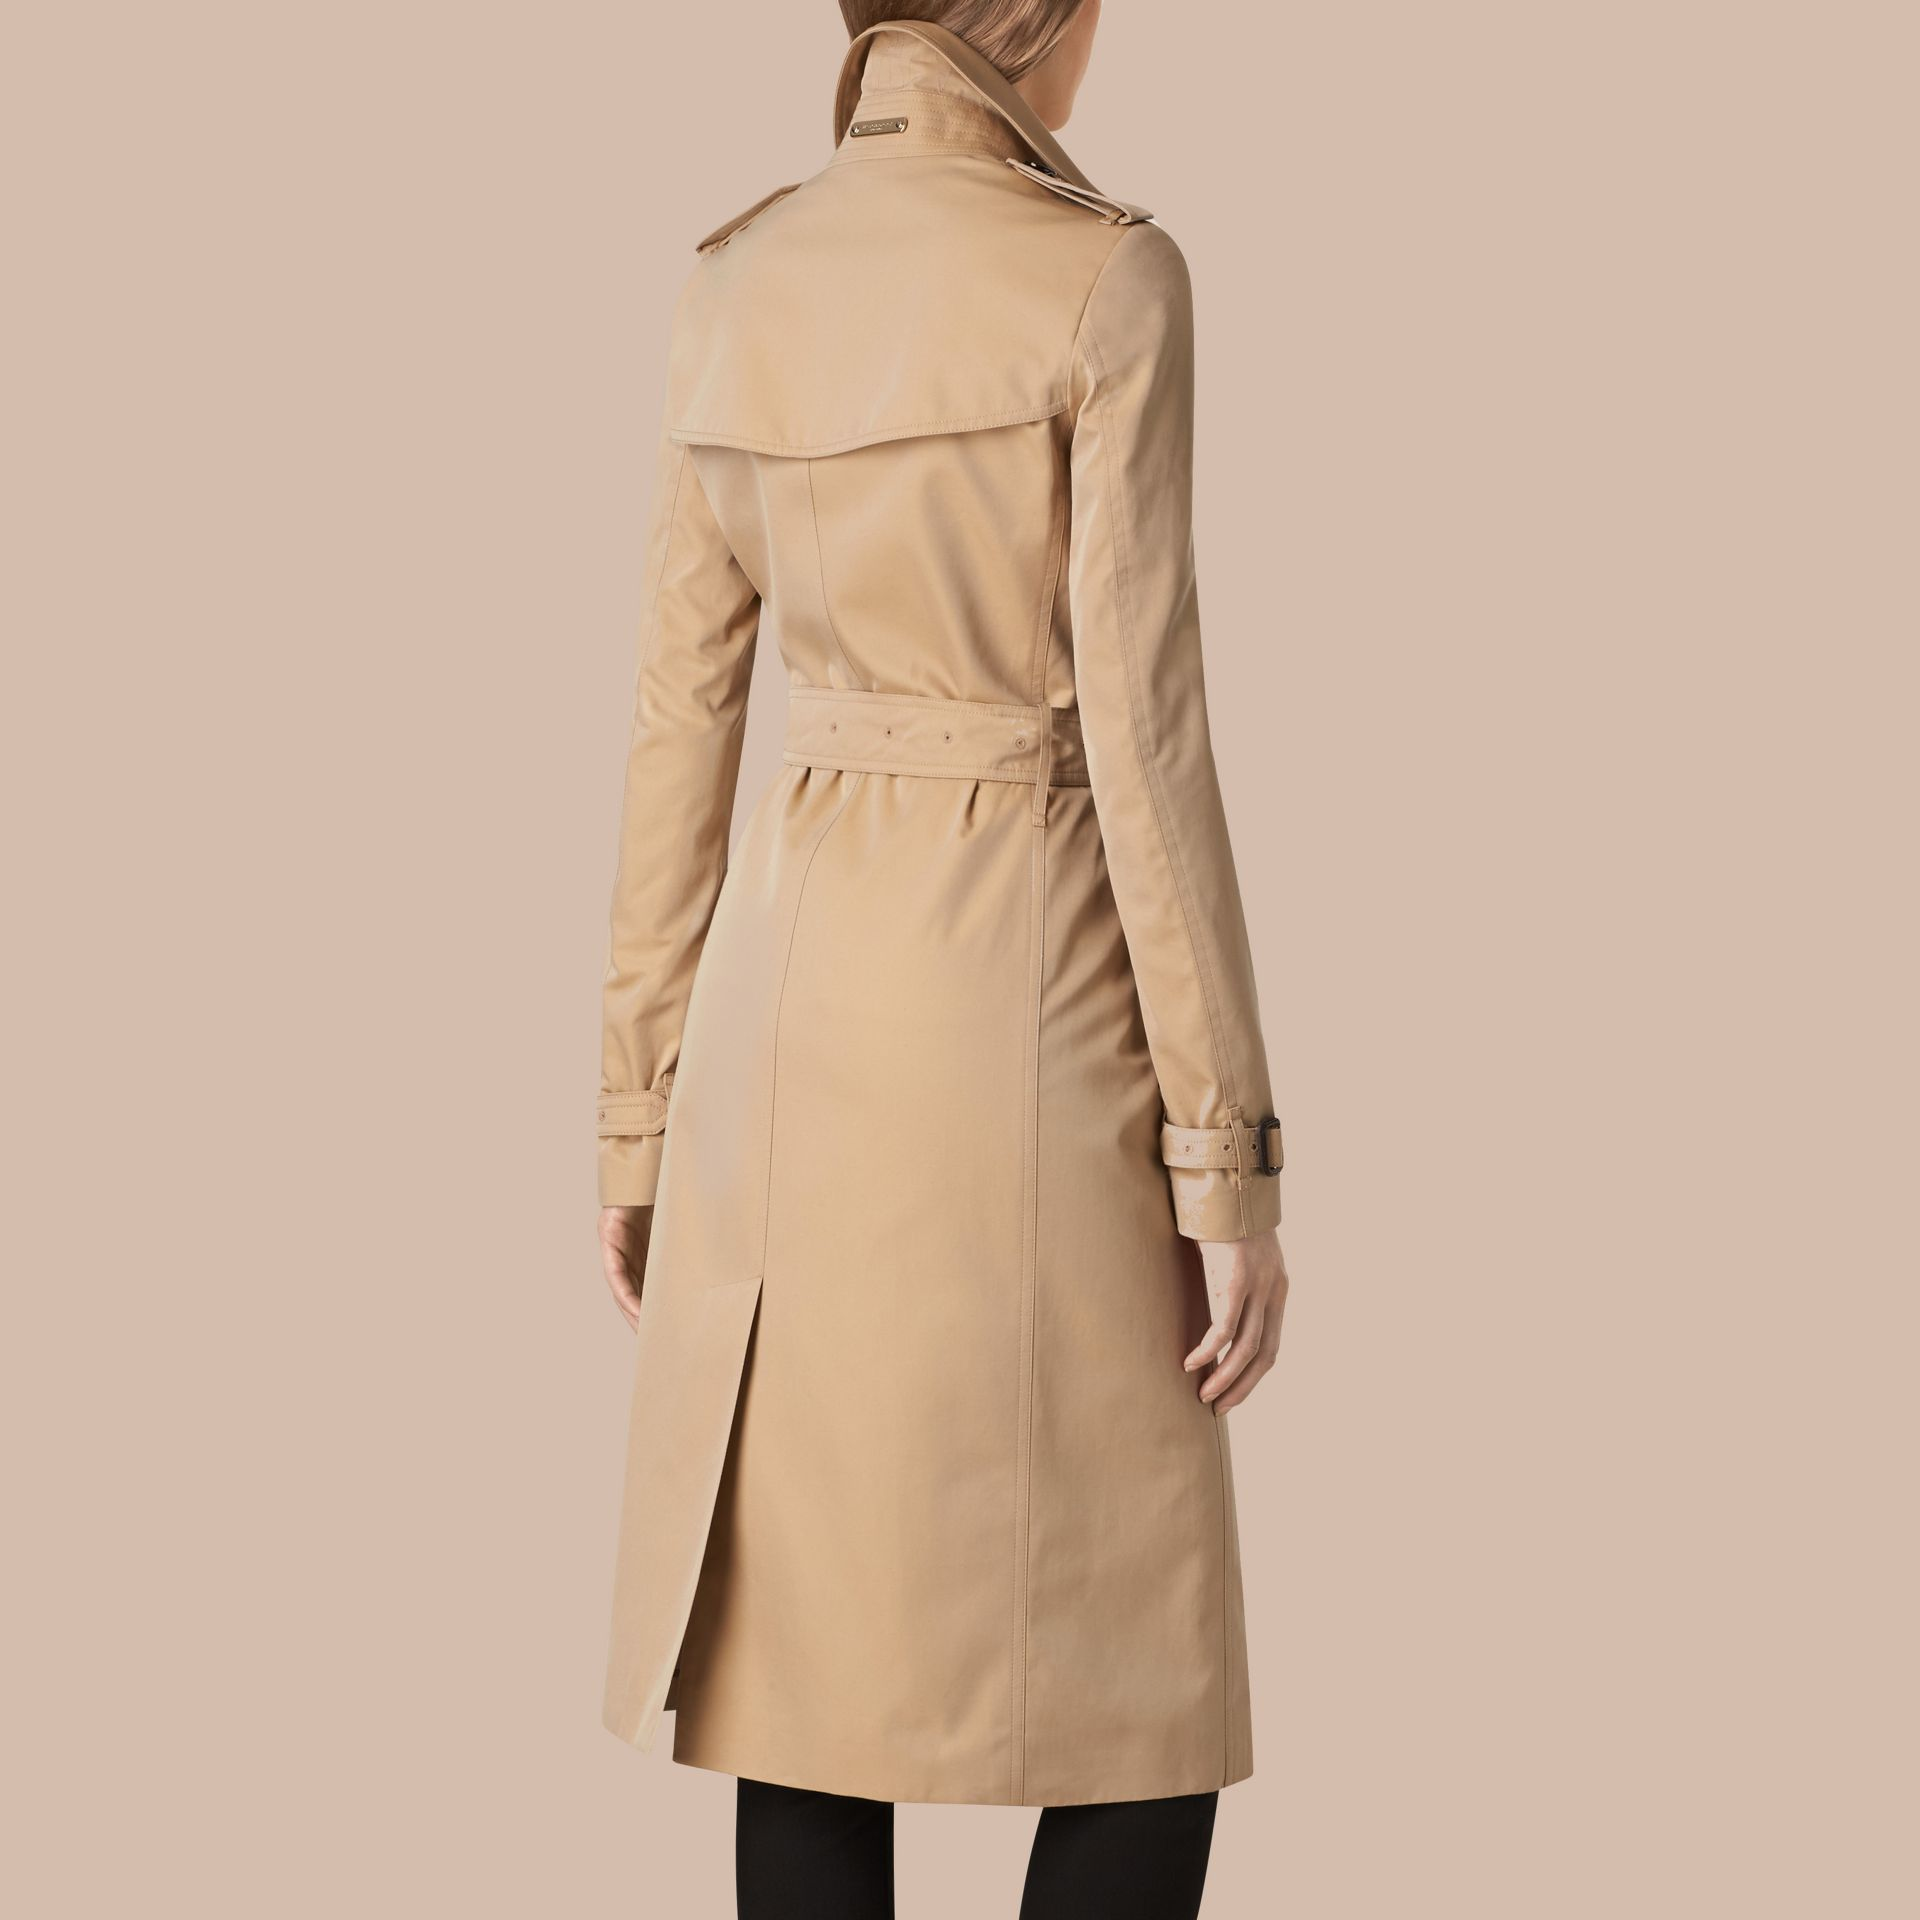 Cotton Gabardine Trench Coat - Women | Burberry - gallery image 3